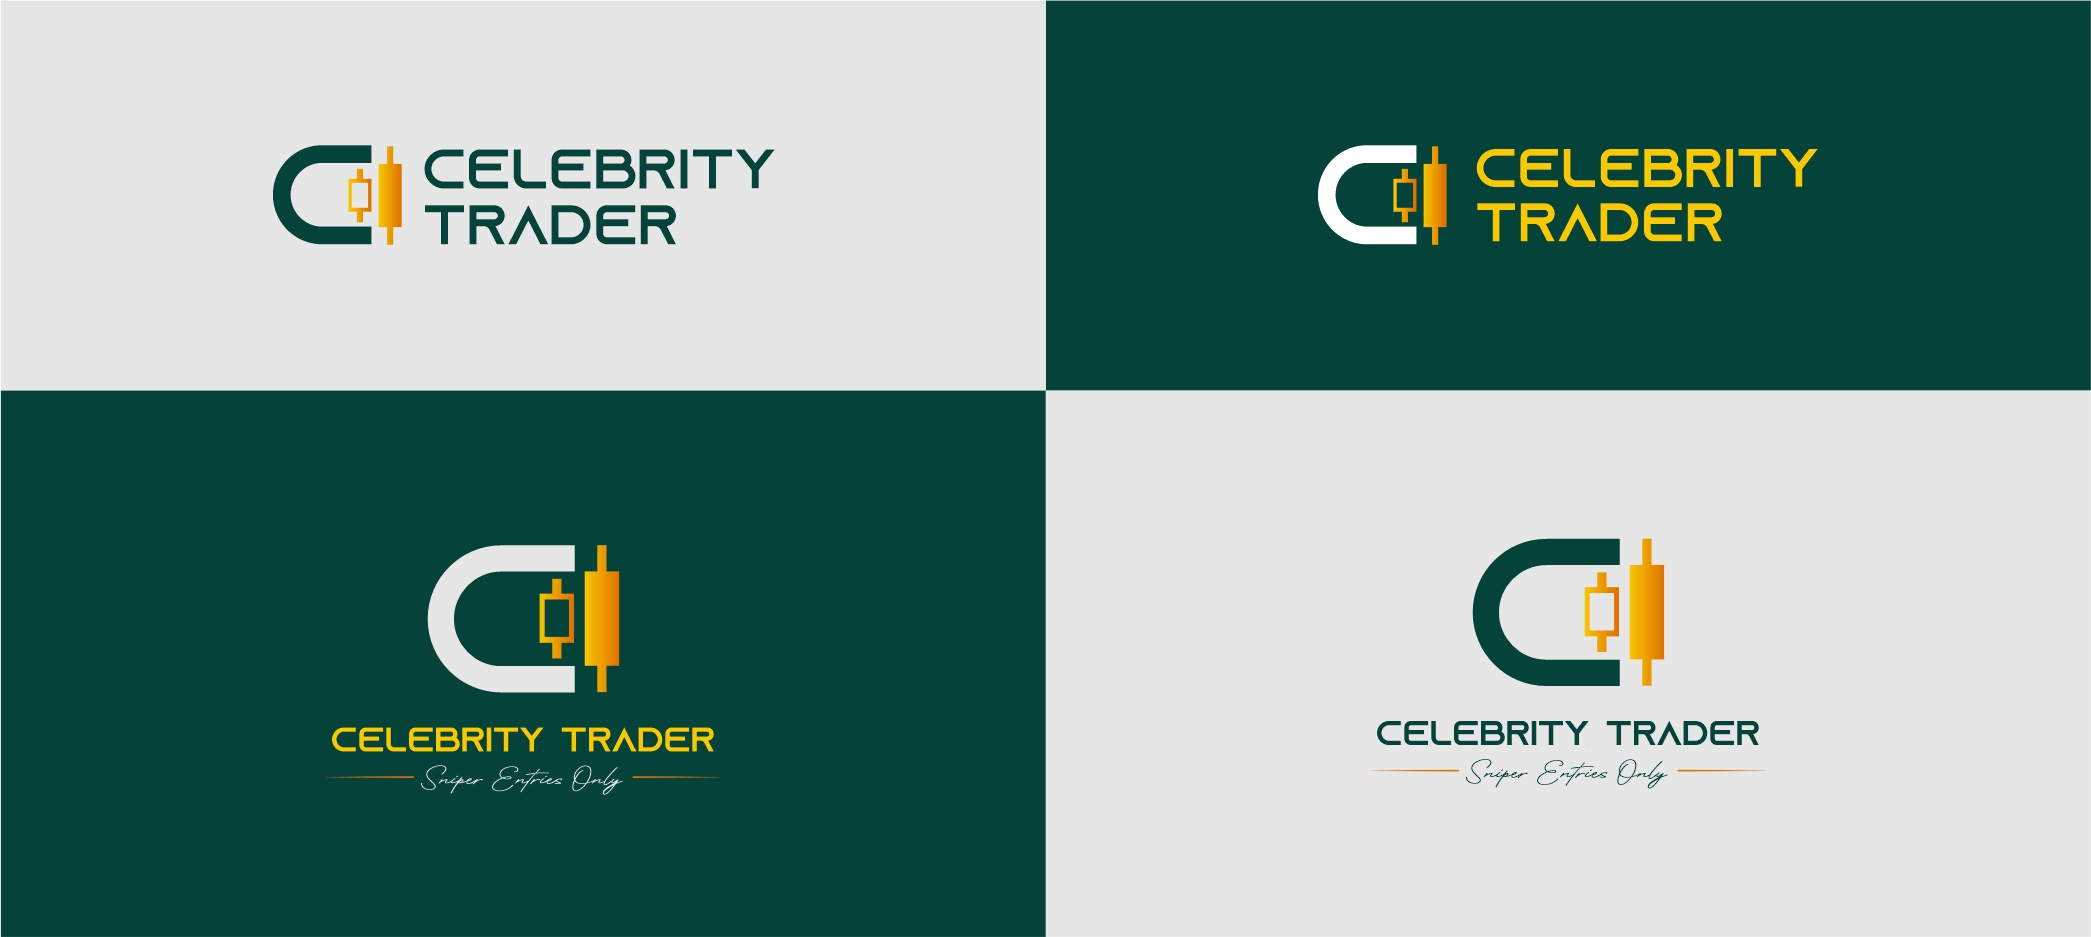 Logo Design & Branding for Forex Brand - Celebrity Trader